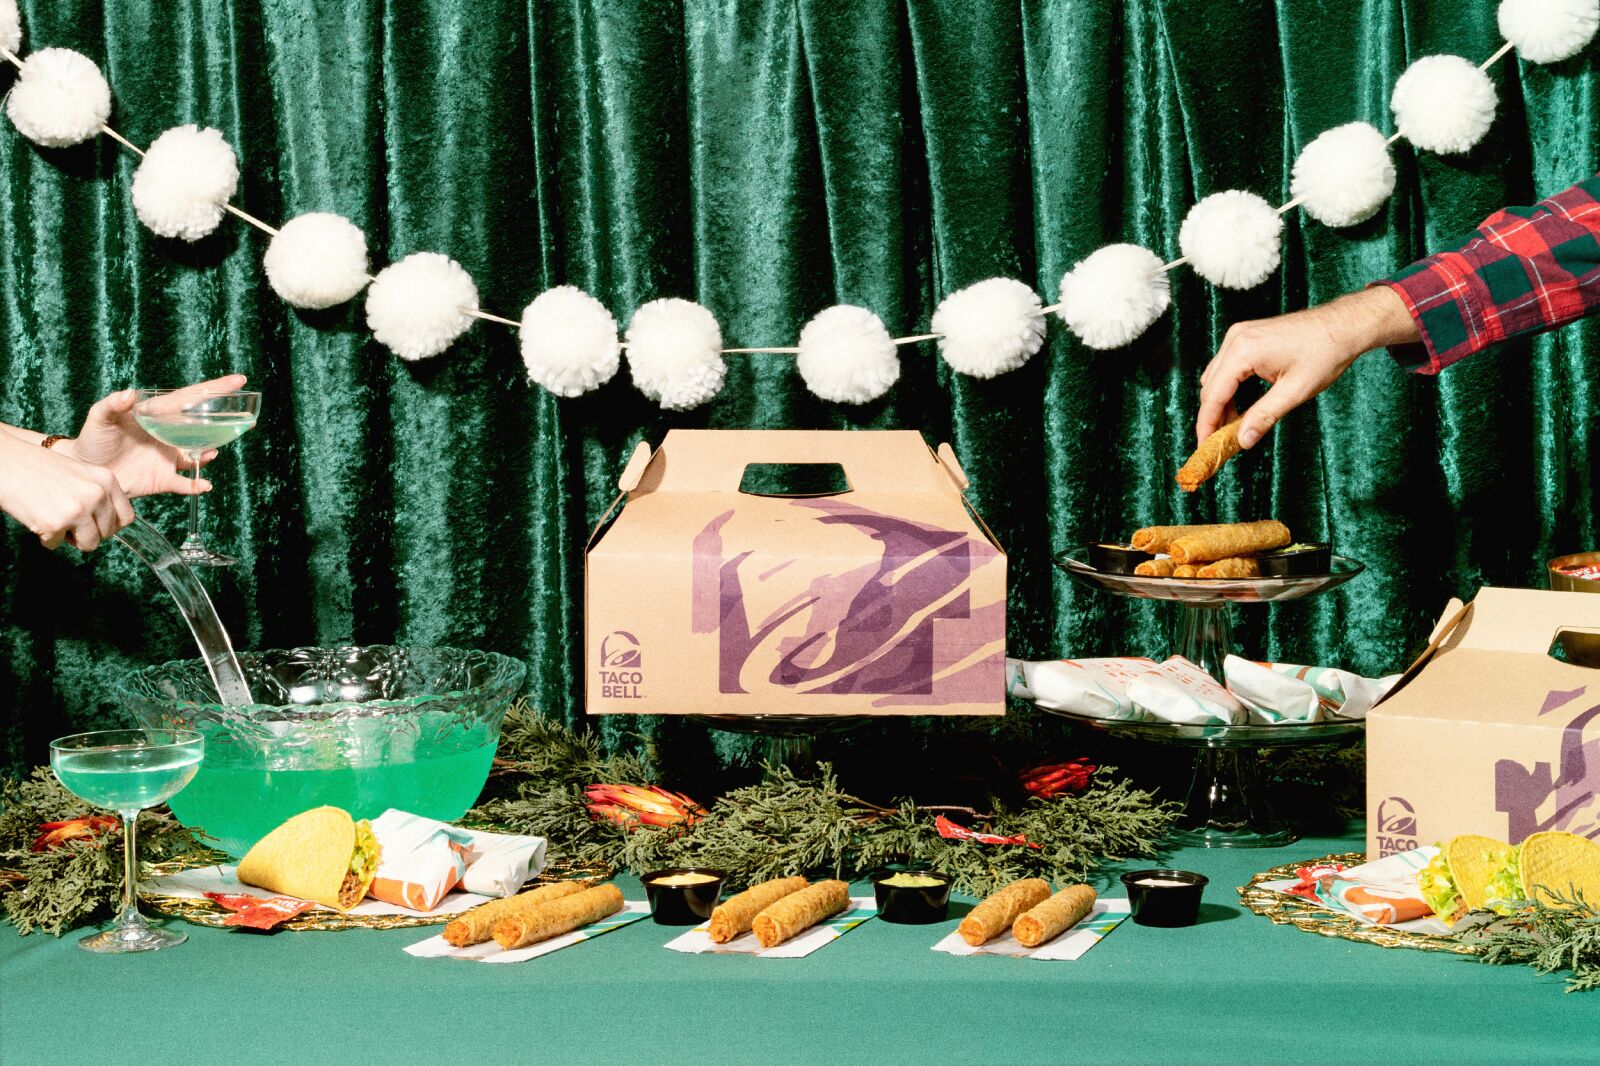 Taco Bell has Friendsgiving covered with new Party Pack